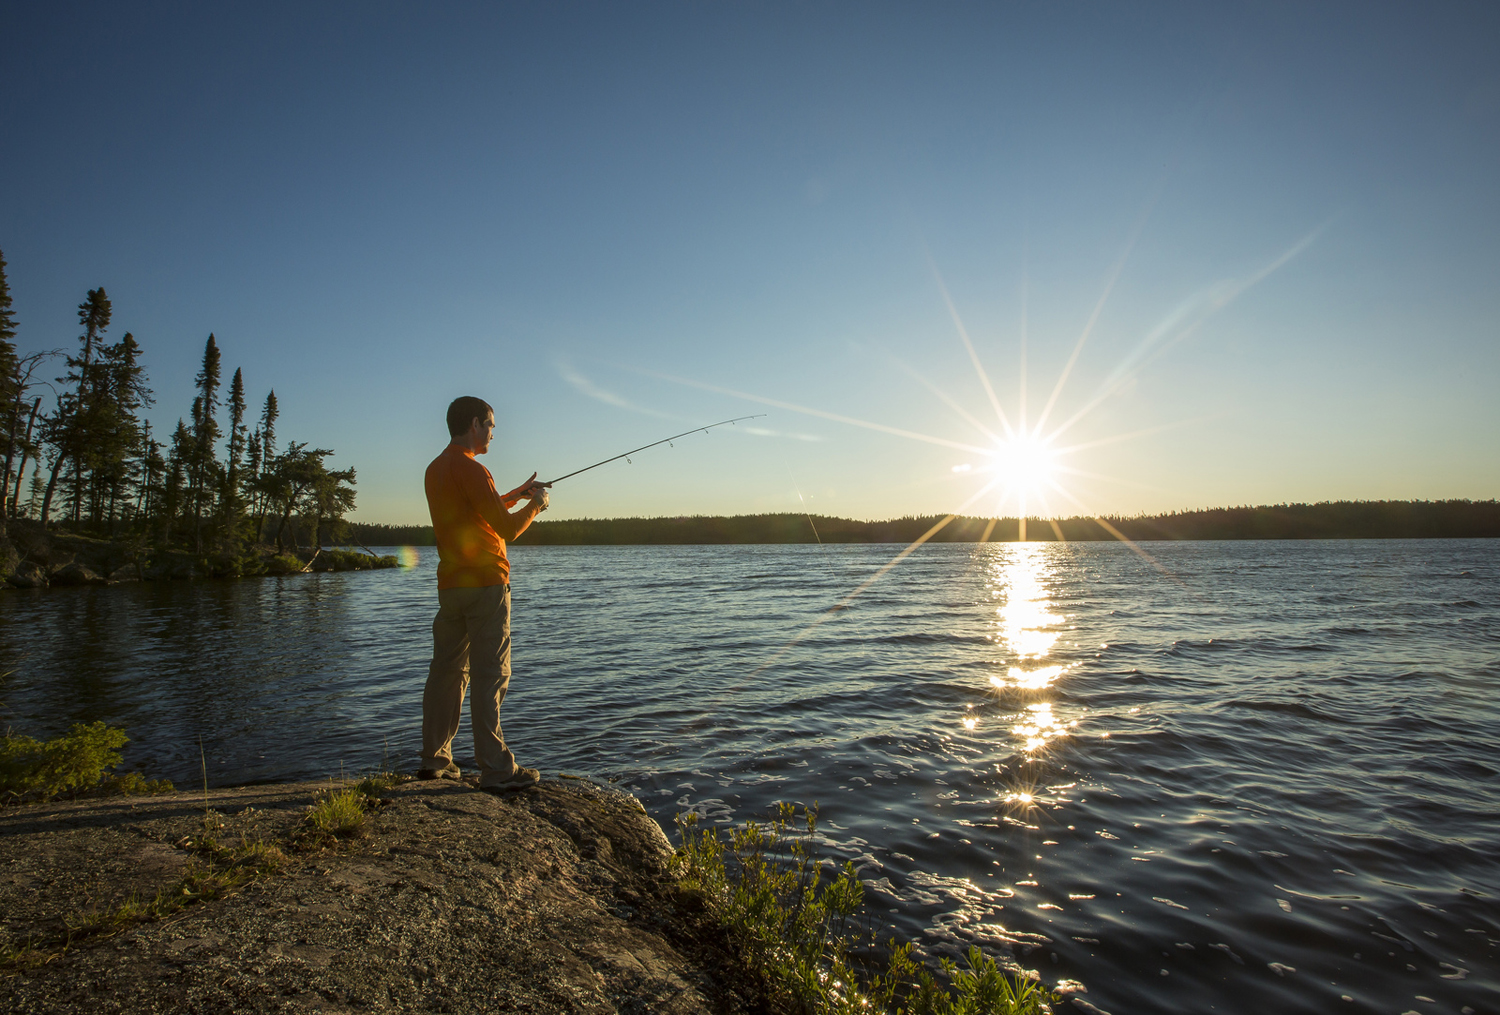 Fishing at sunset - Northwest Ontario